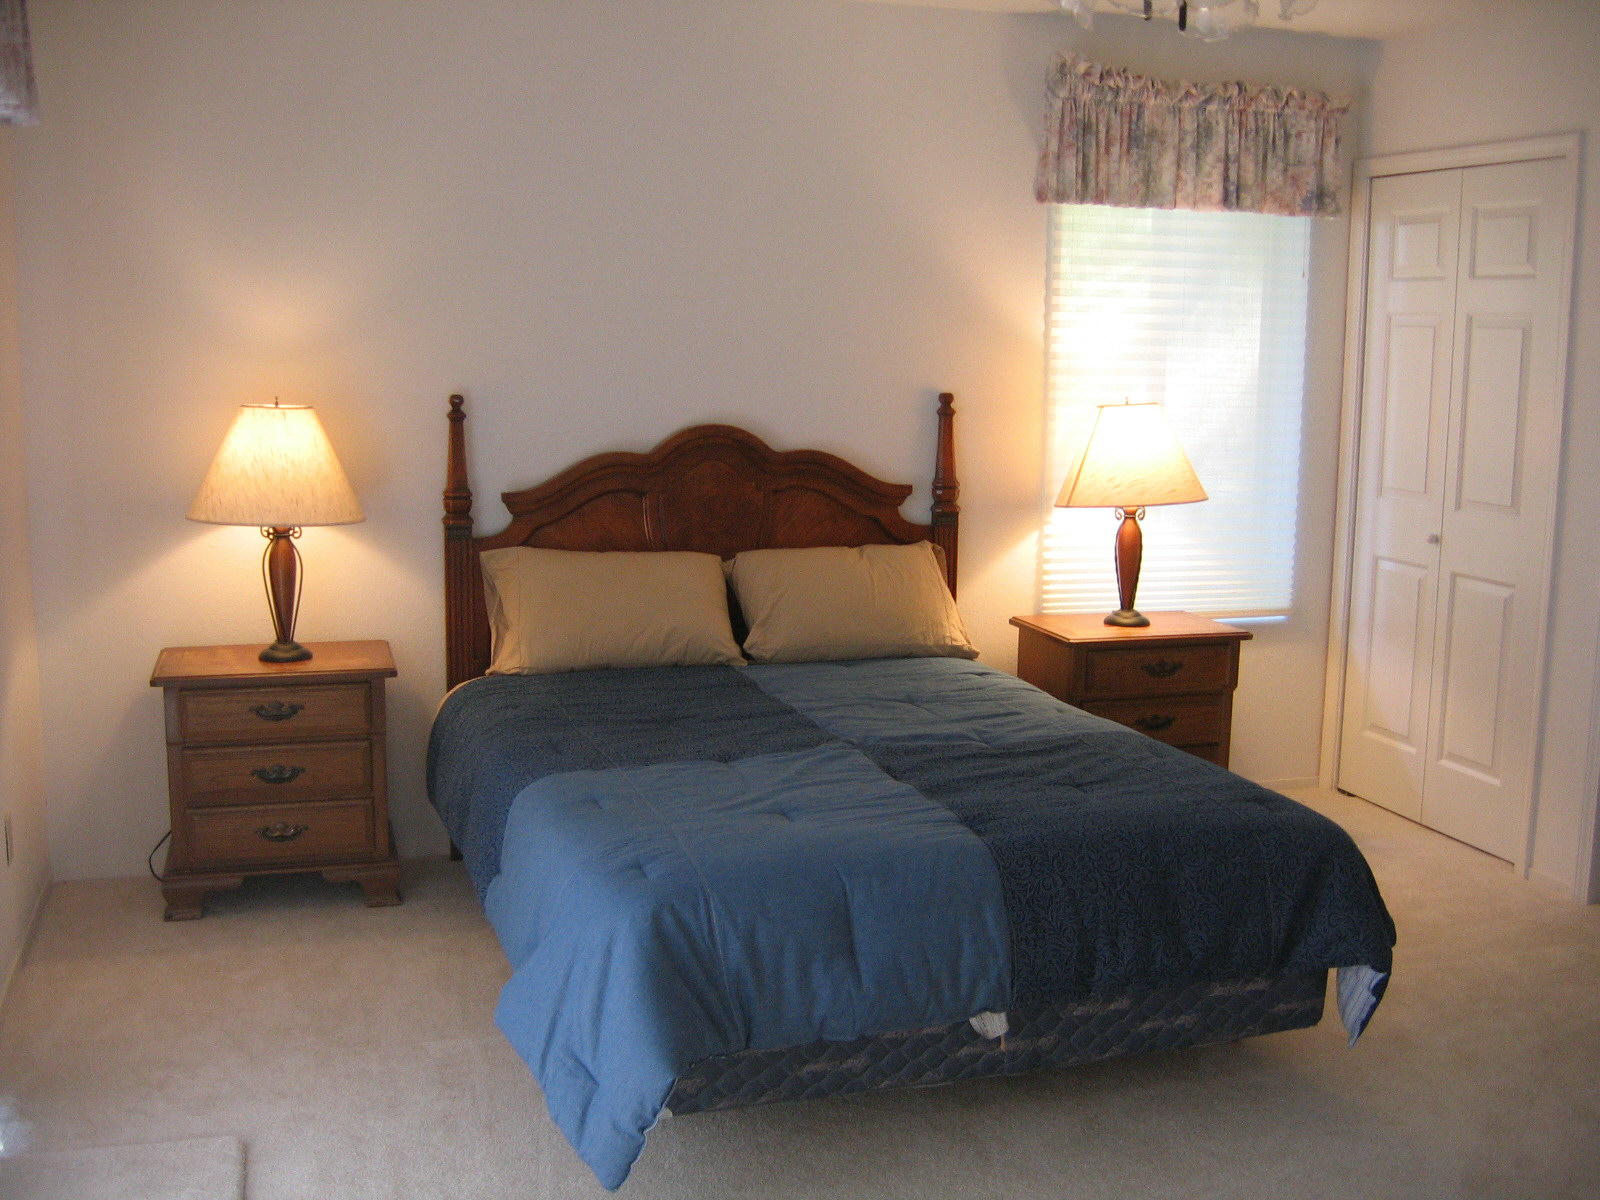 normal bedroom images pictures becuo